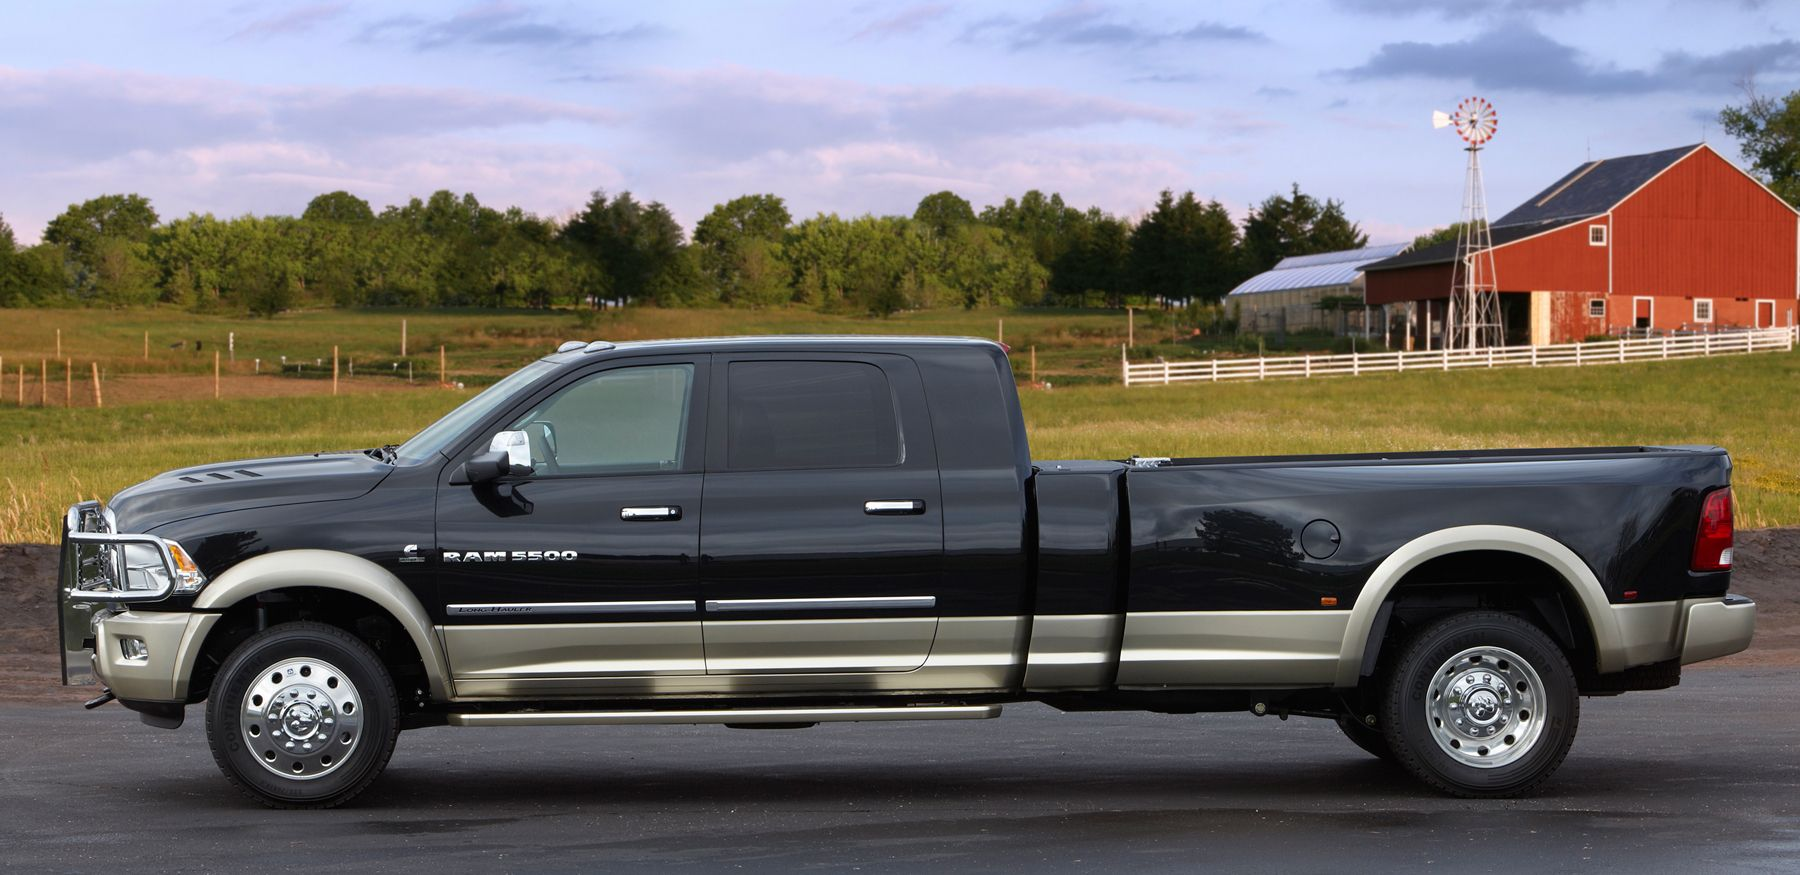 Dodge Ram 5500 Mega Cab Dually Long Bed W/ Grille Guard